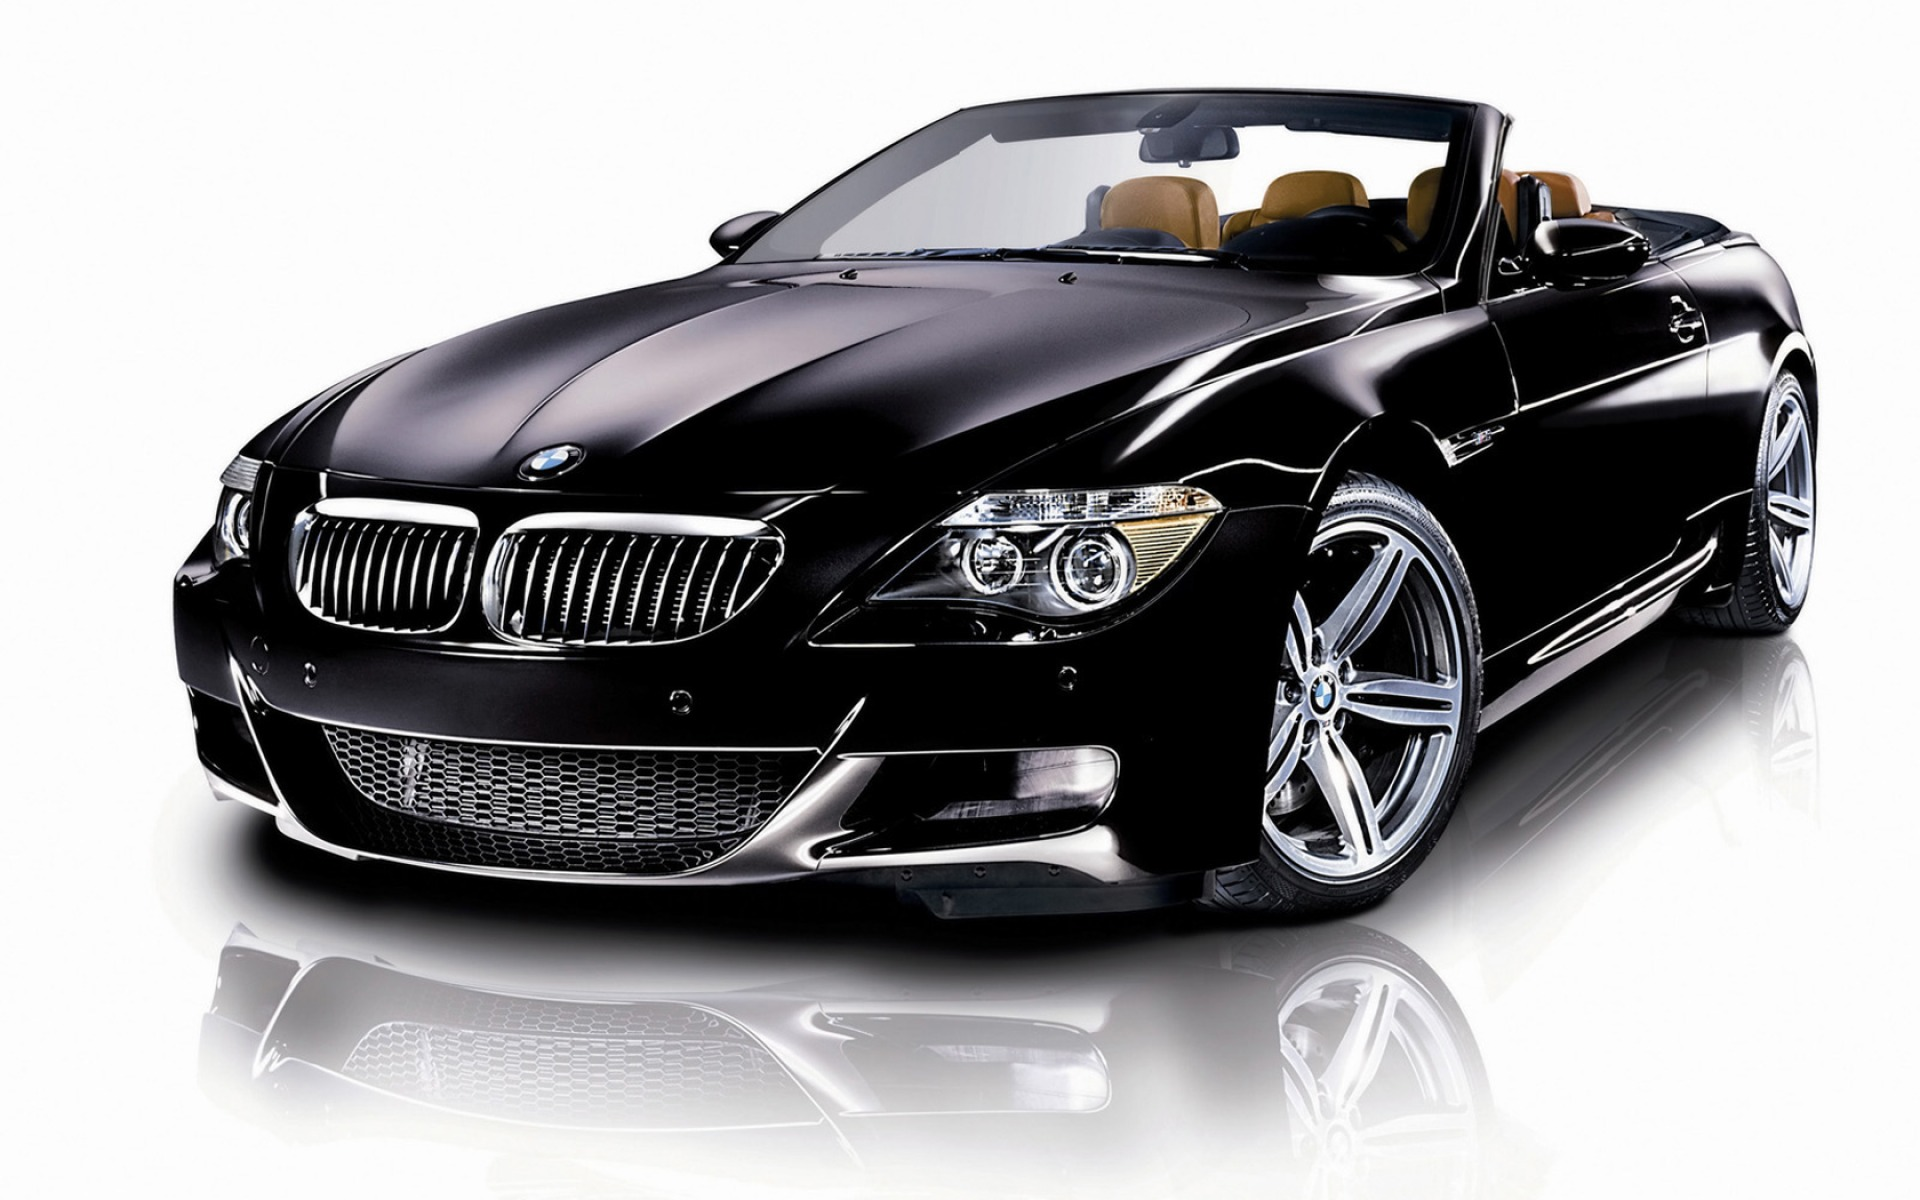 Ultrablogus  Seductive Bmw Car Wallpaper Wallpapers For Free Download About   With Hot Bmw M Convertible Wallpaper Bmw Cars With Astounding Honda Ridgeline Interior Also  Dodge Dakota Interior In Addition  Vw Beetle Interior And Ford Edge Interior Space As Well As  Mustang Interior Colors Additionally  Chevy C Interior From Allfreedownloadcom With Ultrablogus  Hot Bmw Car Wallpaper Wallpapers For Free Download About   With Astounding Bmw M Convertible Wallpaper Bmw Cars And Seductive Honda Ridgeline Interior Also  Dodge Dakota Interior In Addition  Vw Beetle Interior From Allfreedownloadcom